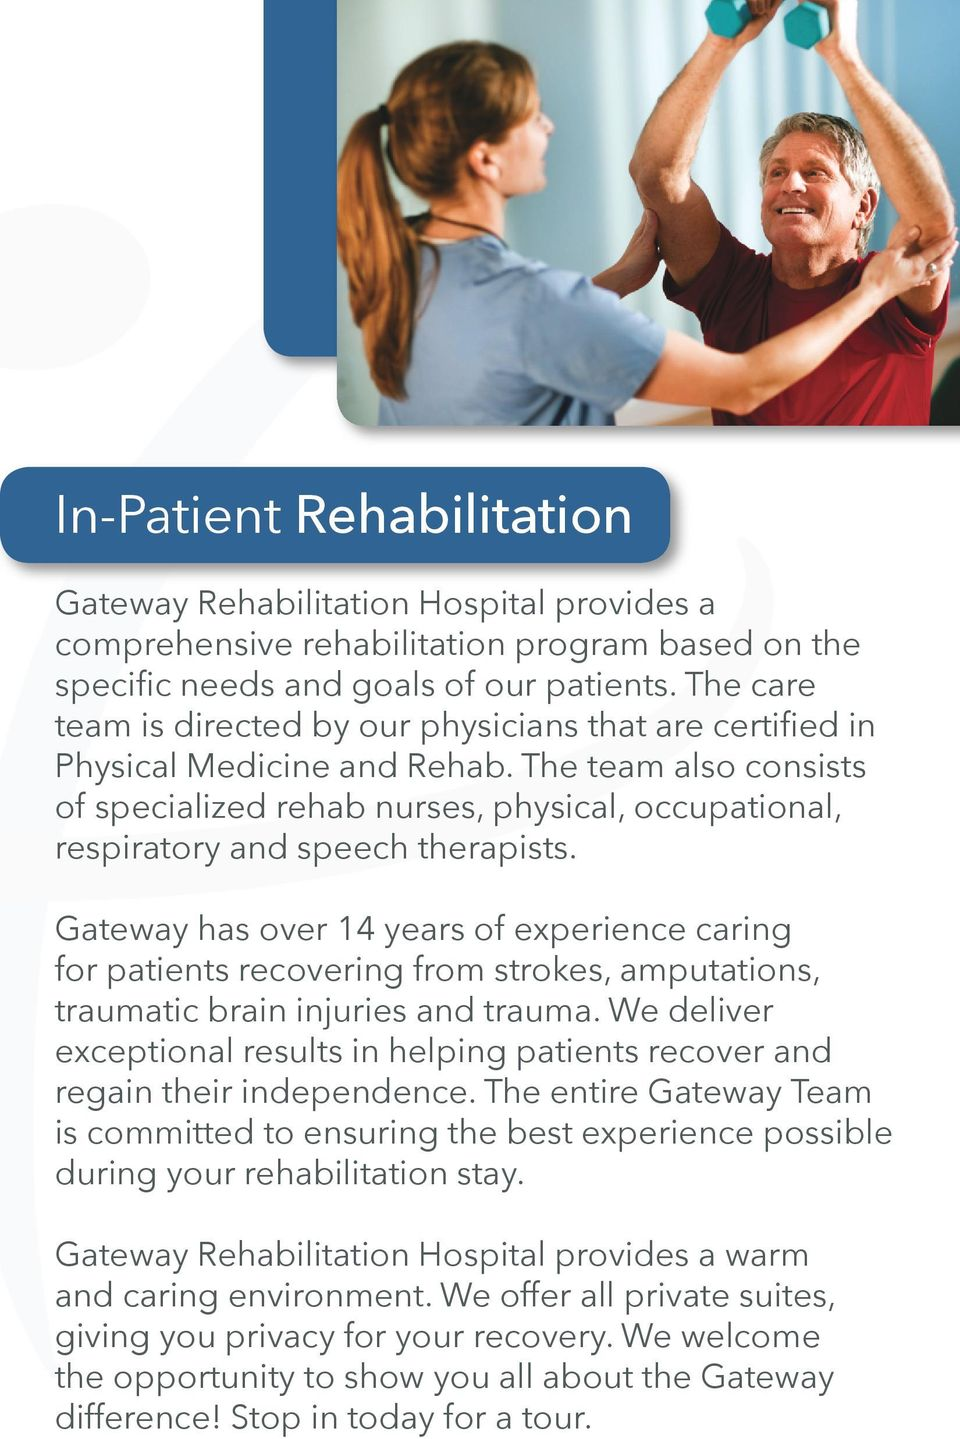 The team also consists of specialized rehab nurses, physical, occupational, respiratory and speech therapists.